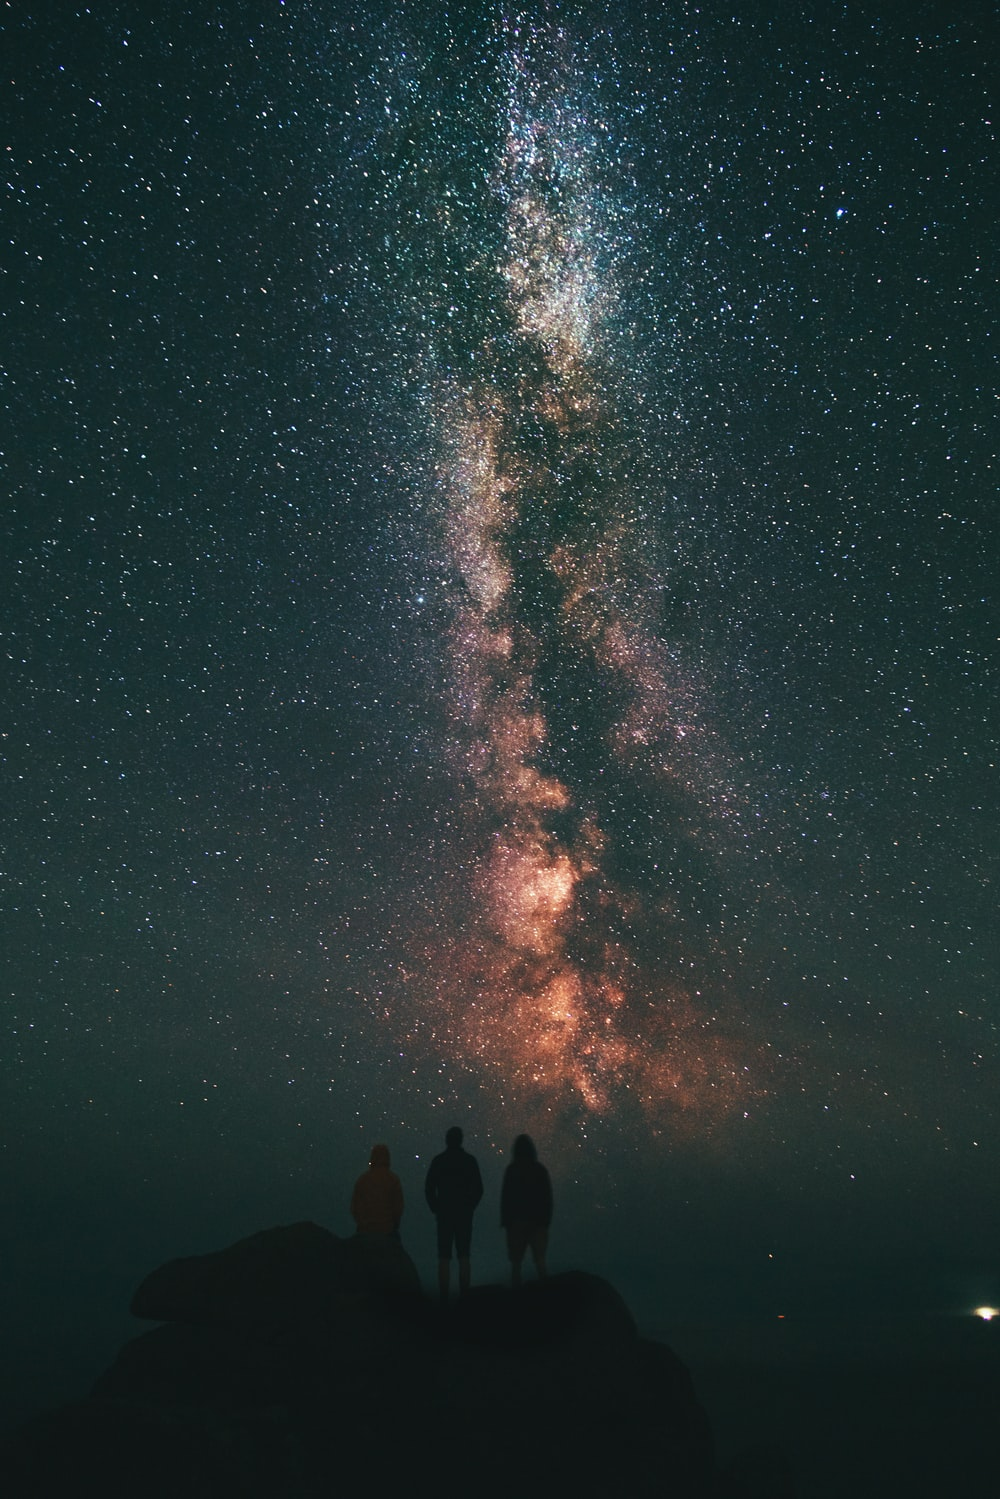 Download android wallpapers unsplash three people staring at a vibrant starry night sky voltagebd Gallery